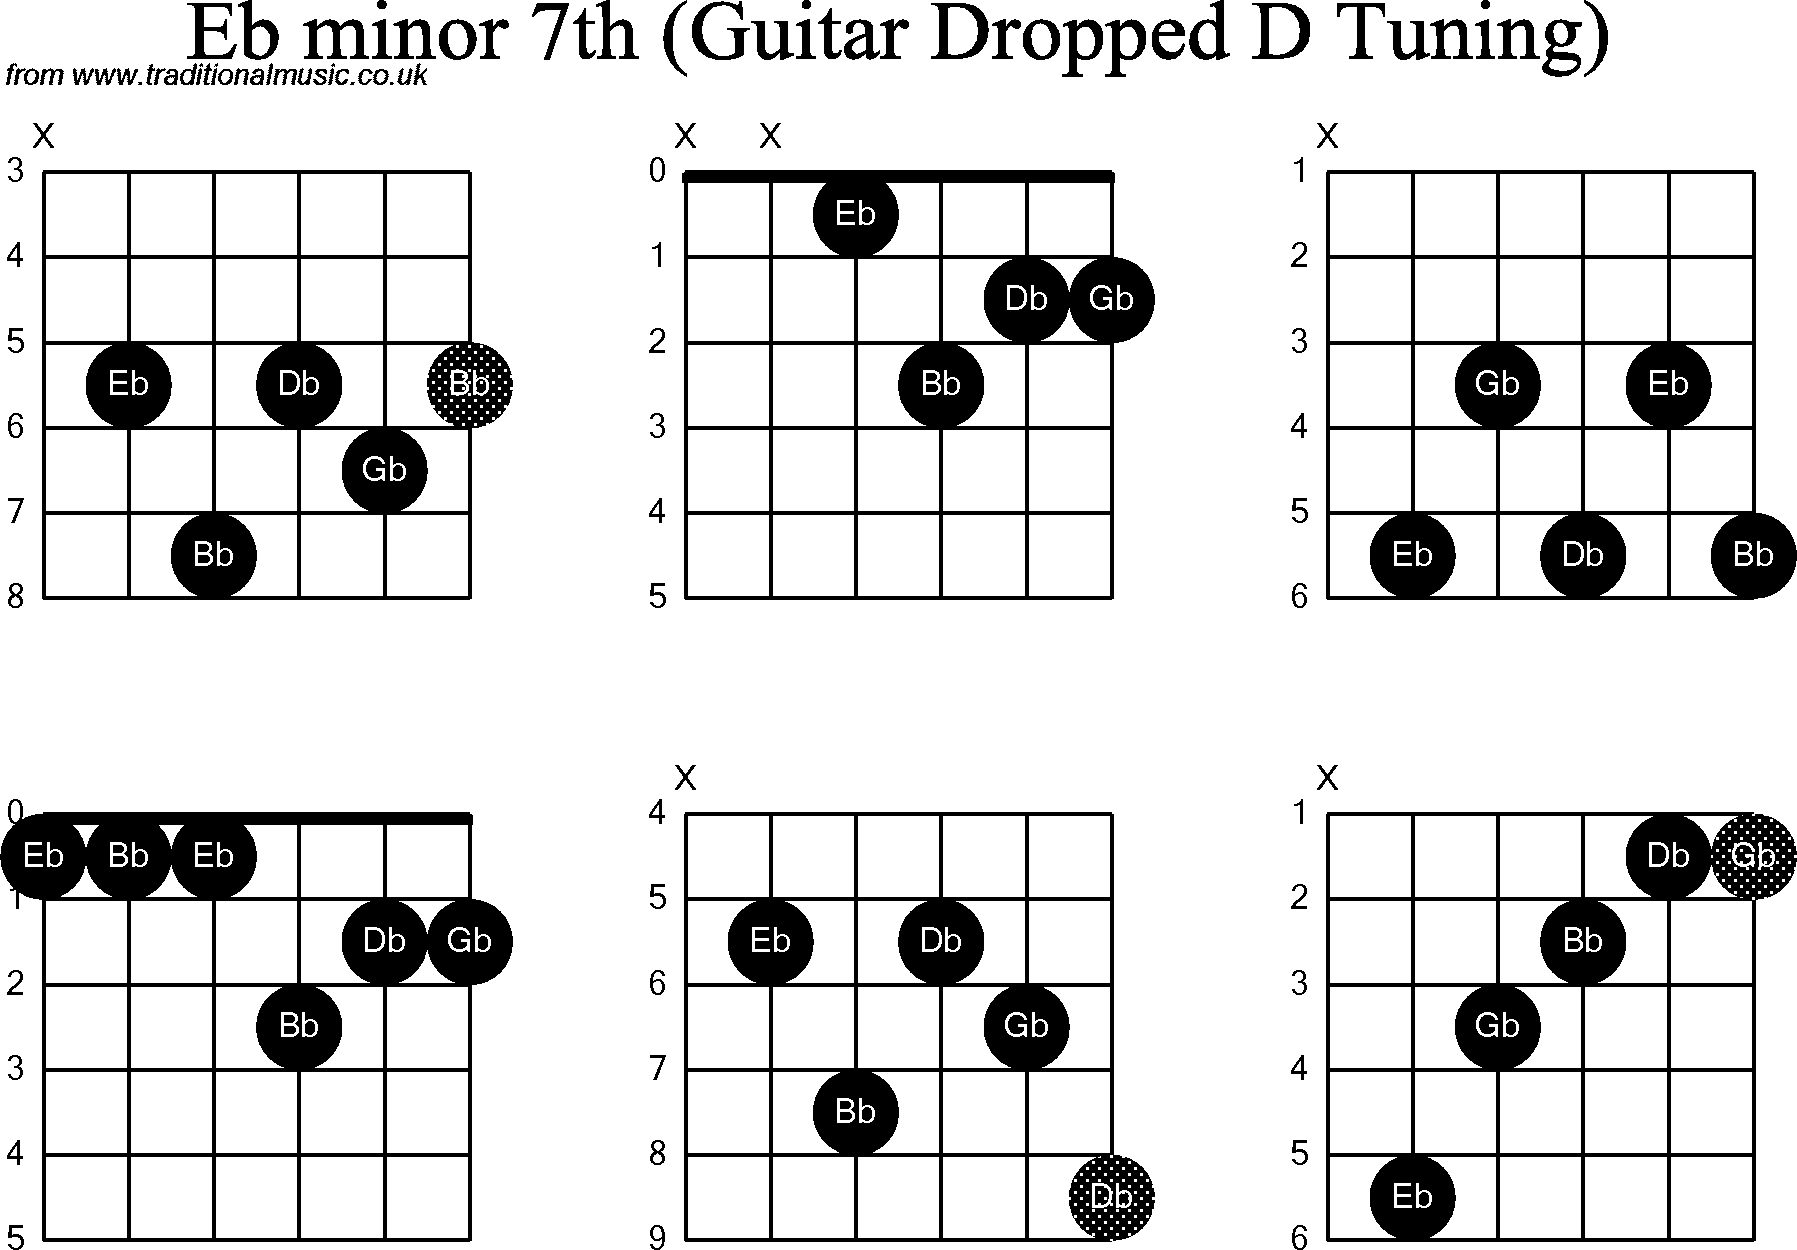 Tuning Standard Tuning Alternate Names Eb dominant Ebdom7 JamPlaycom is proud to offer you free guitar chords and chord charts Below you will find